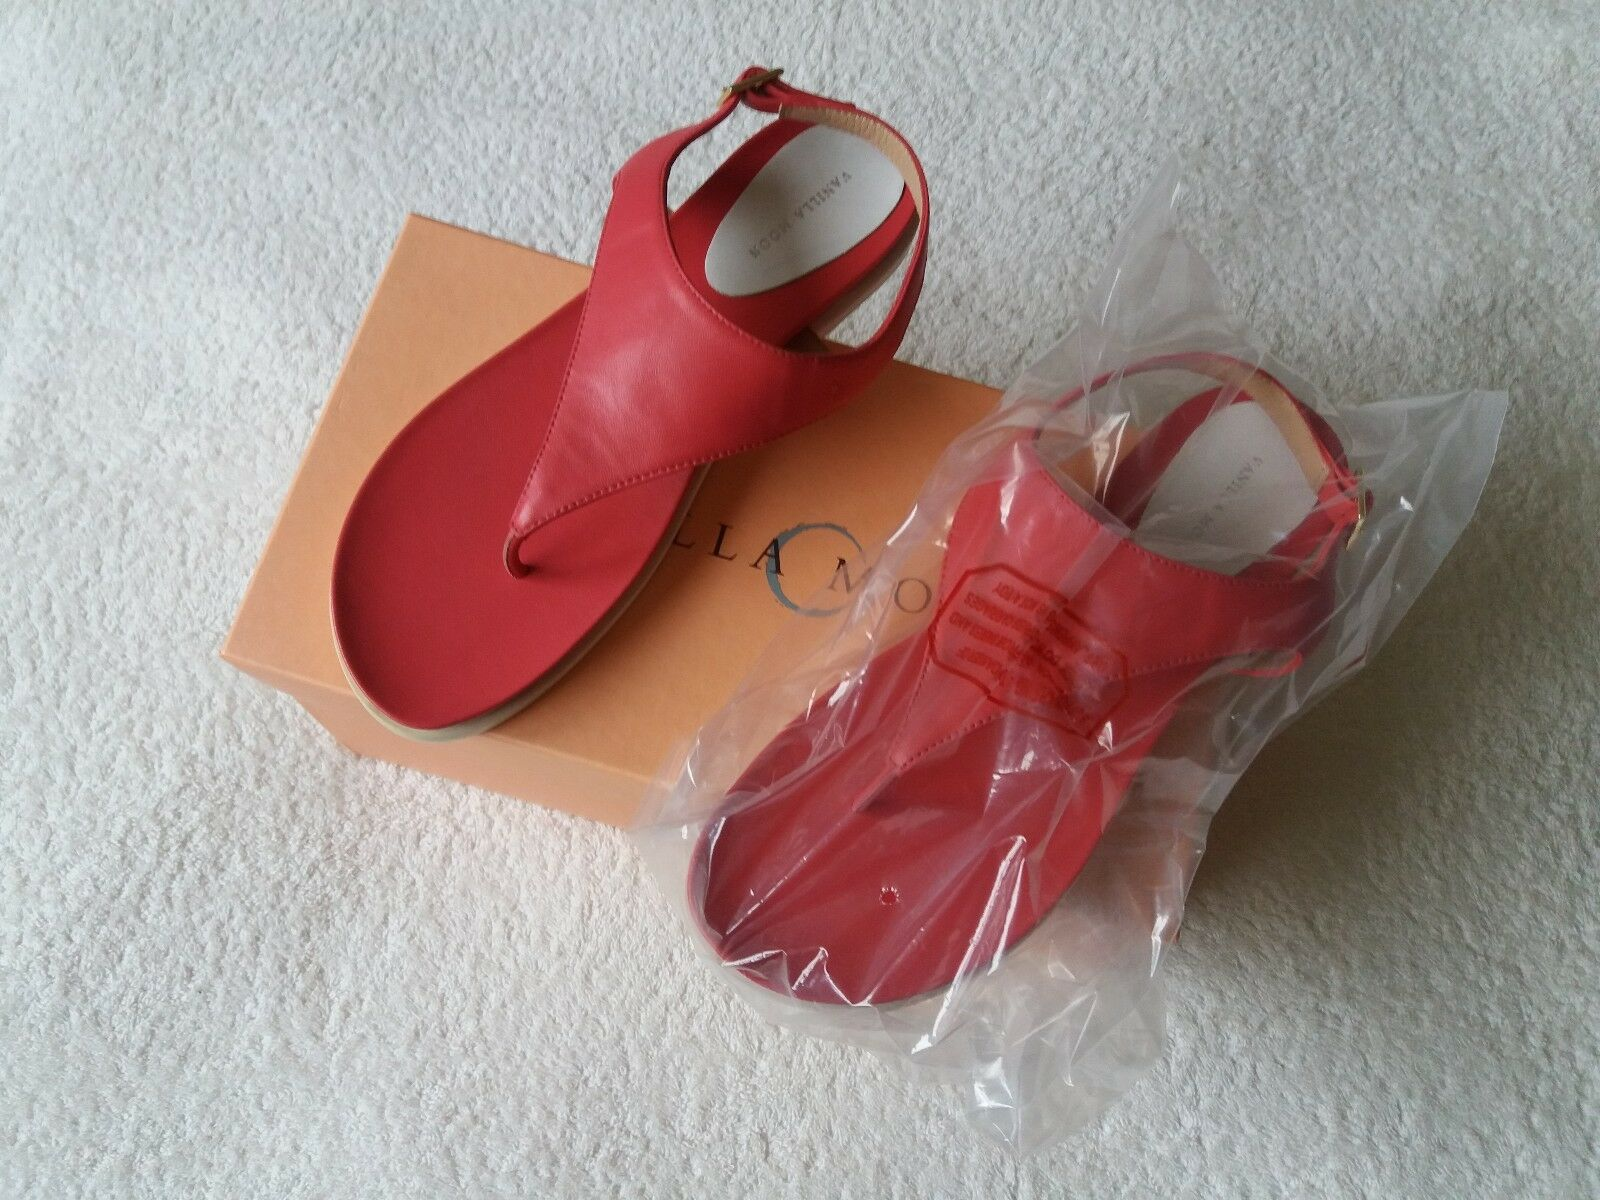 Brand New Women's Vanilla Moon Sandals EU Size 38